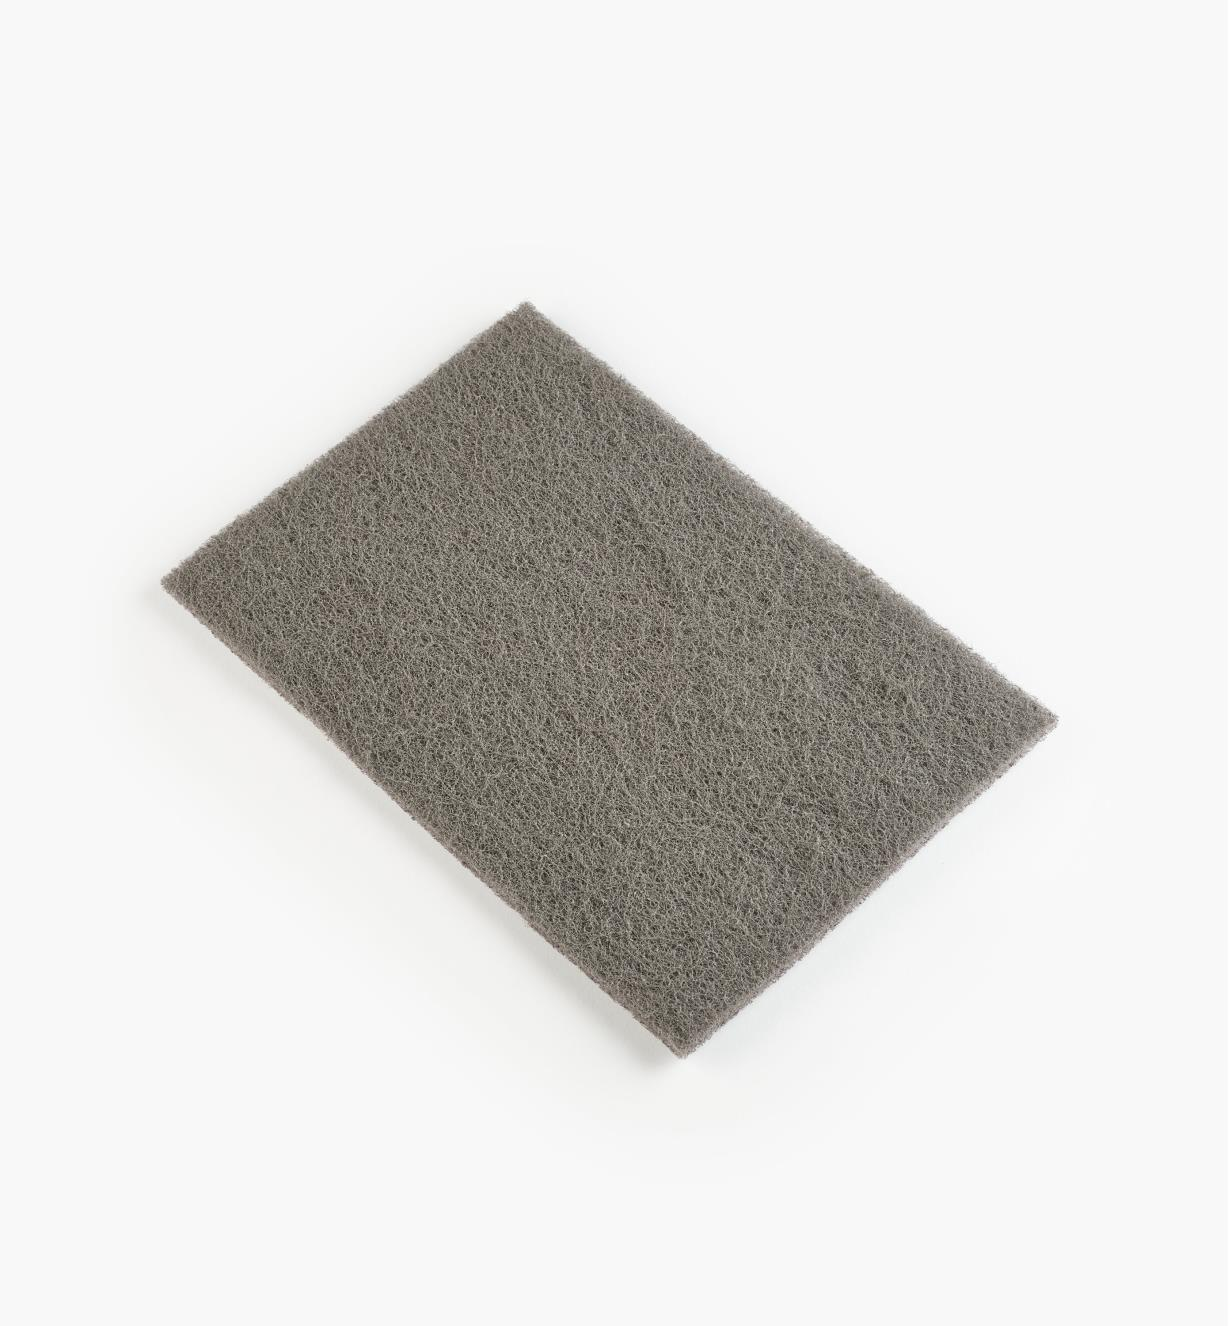 54K0503 - 3M Rubbing Pad, Fine Silicon Carbide